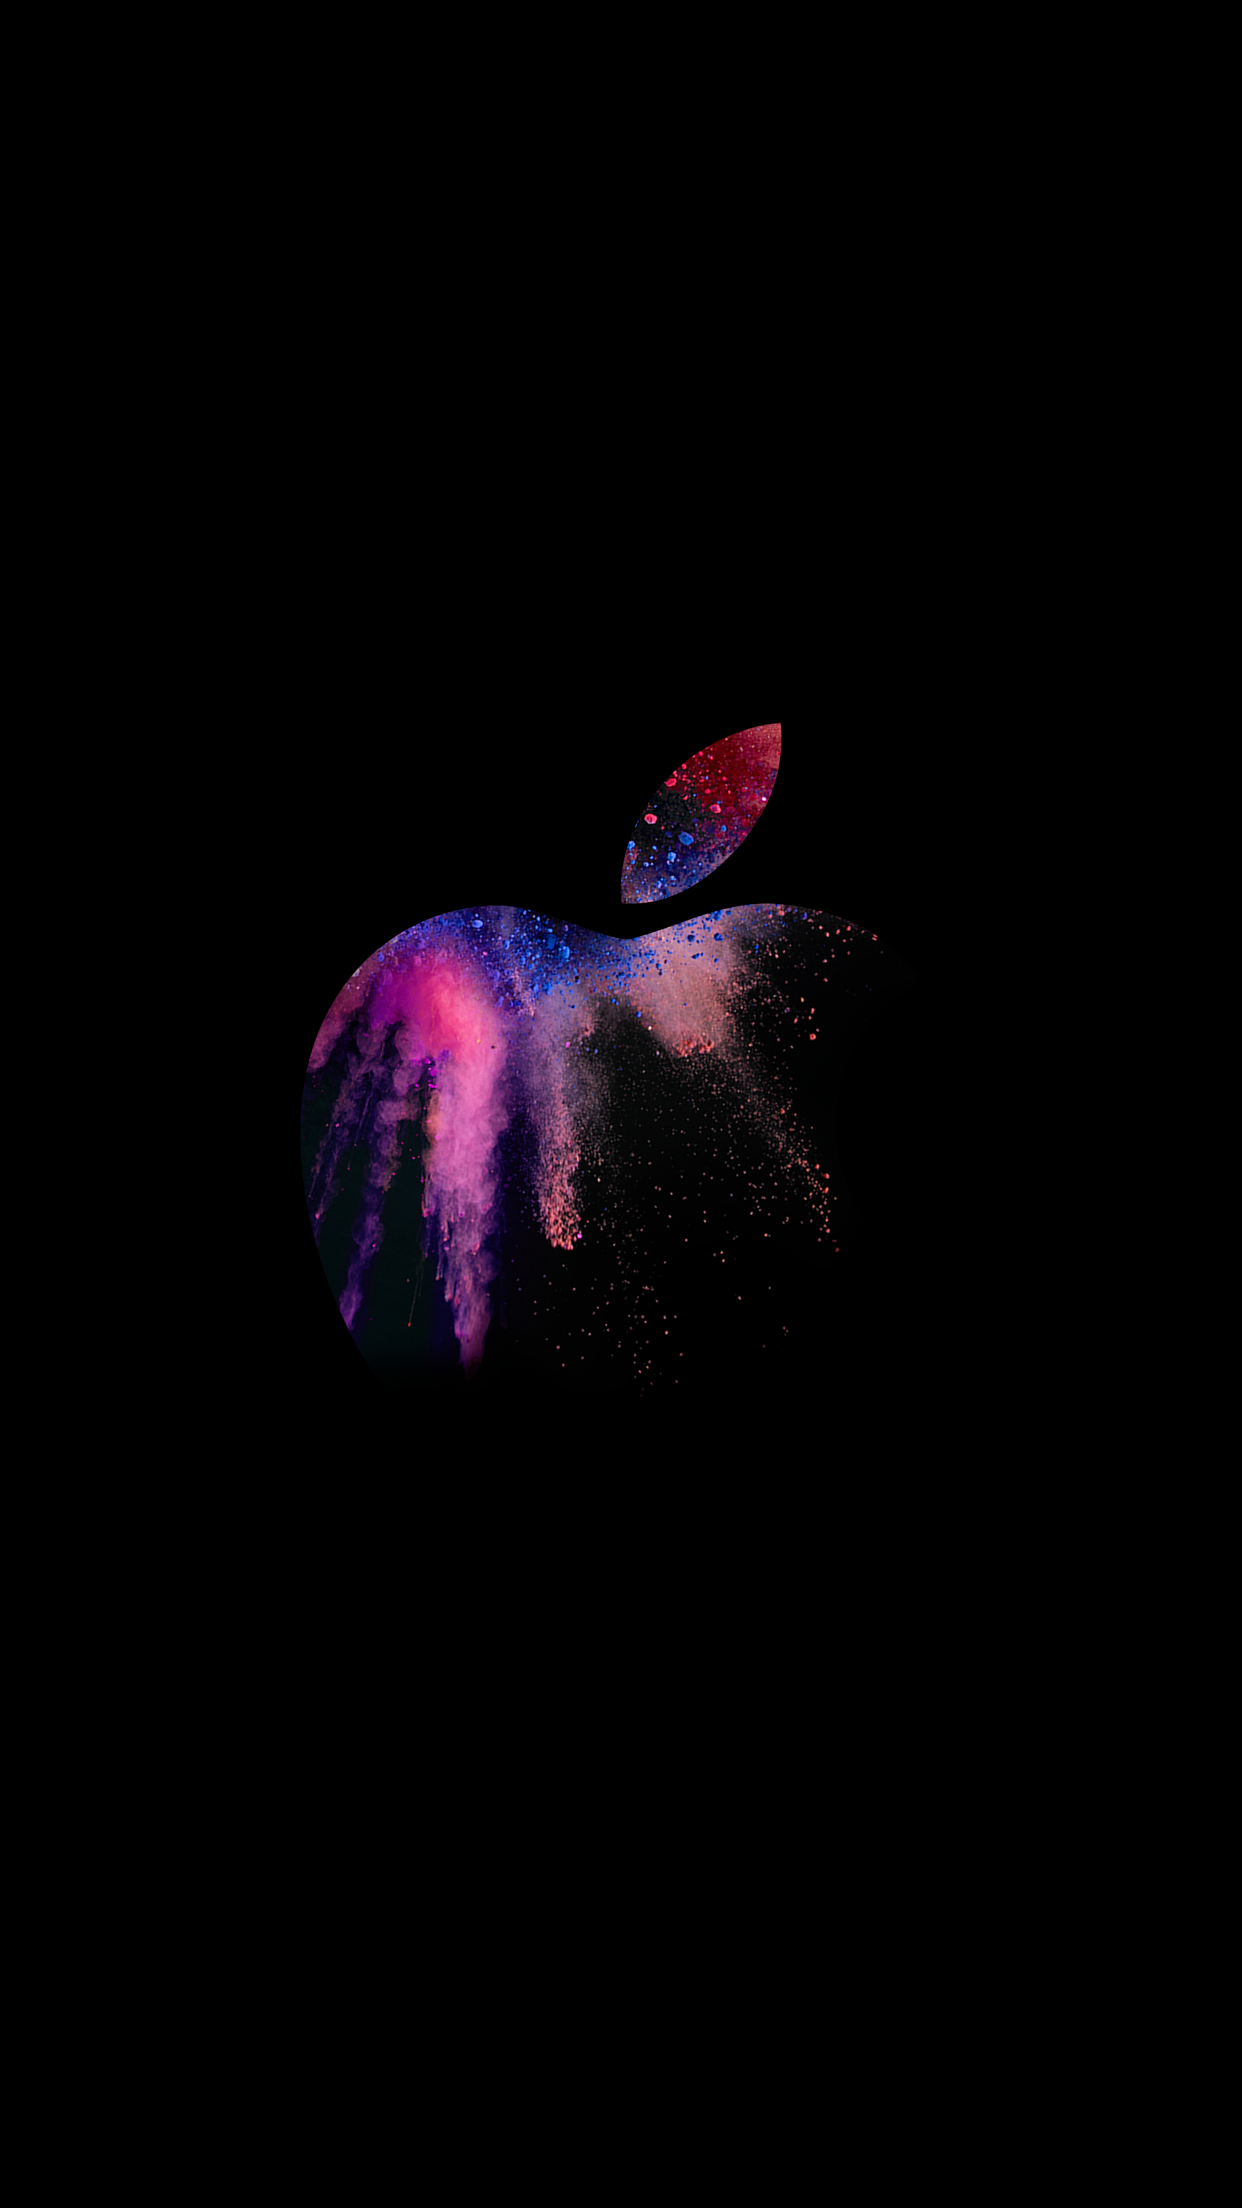 apple october 27 event wallpapers quothello againquot